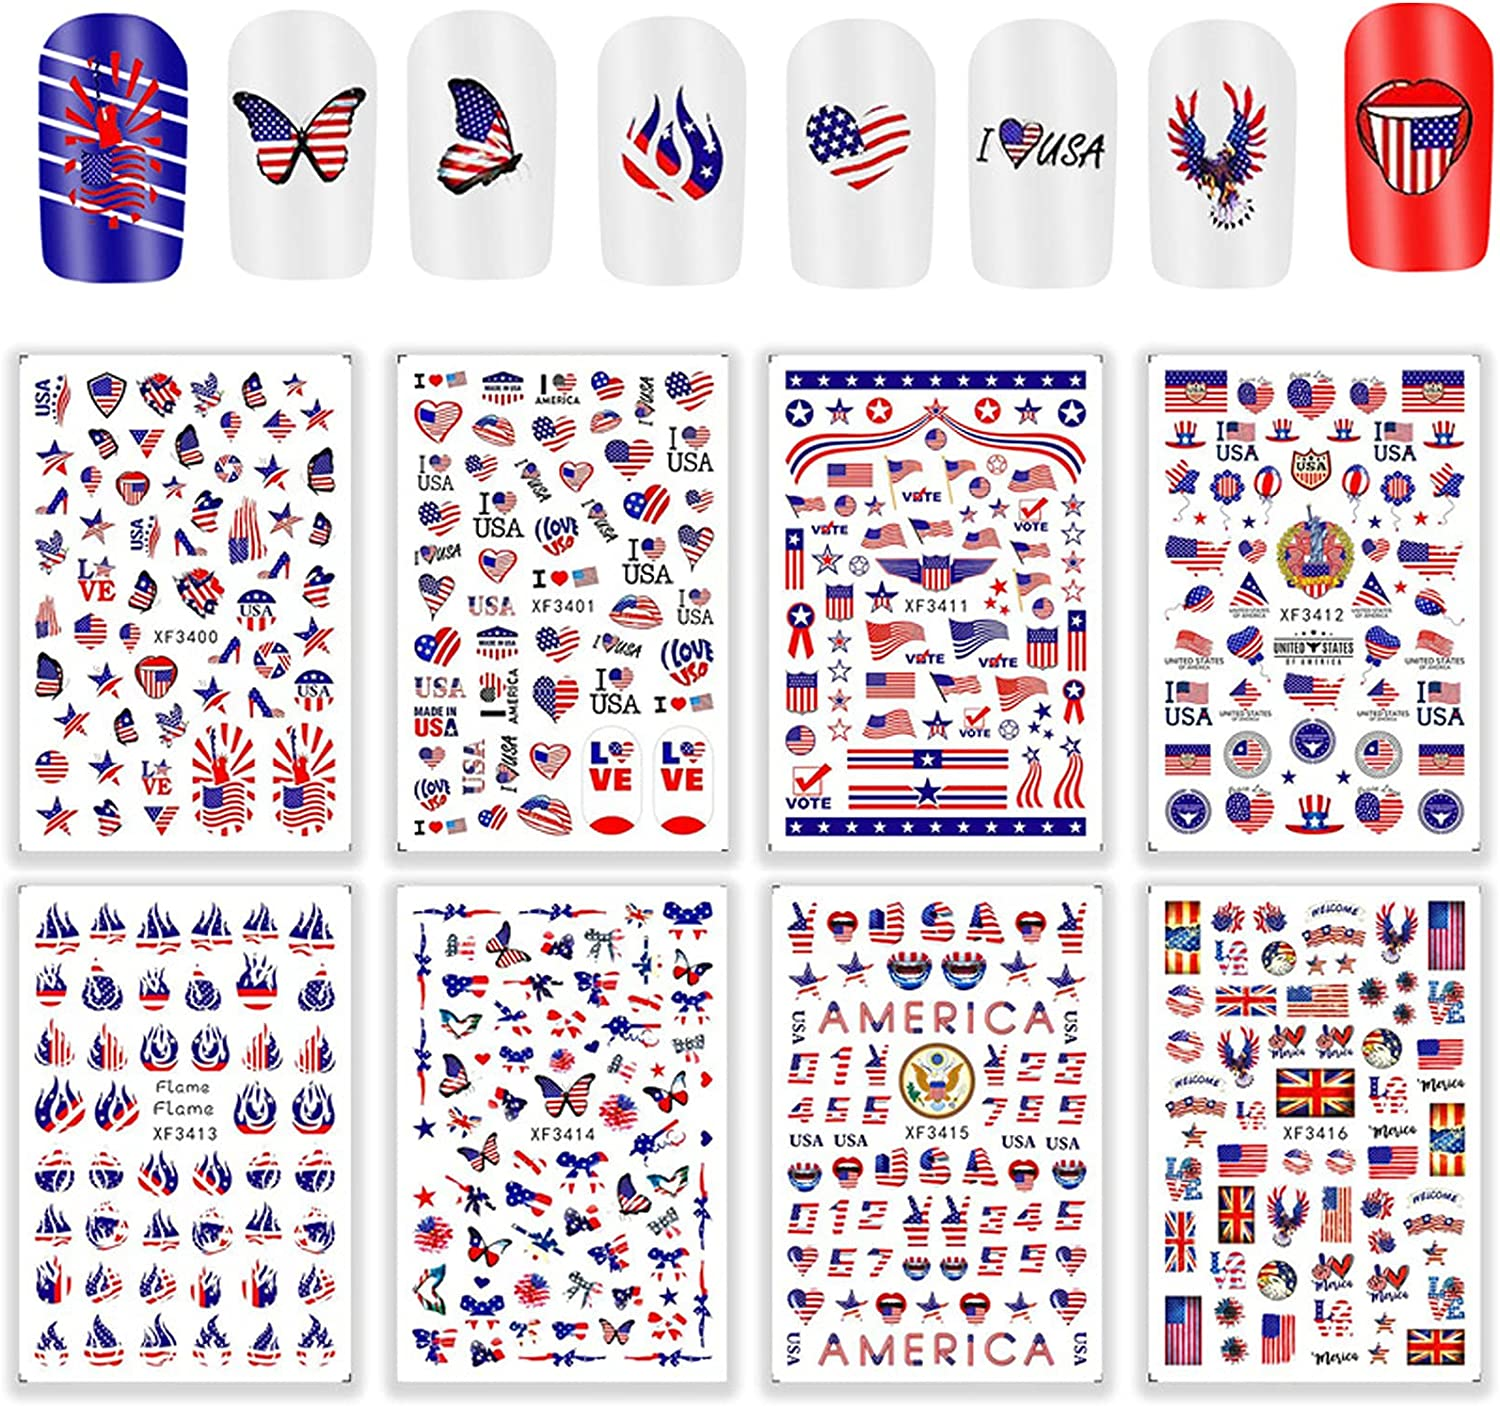 Max 58% OFF 4th of July Nail Stickers Stic Art Decals Patriotic 3D Max 50% OFF